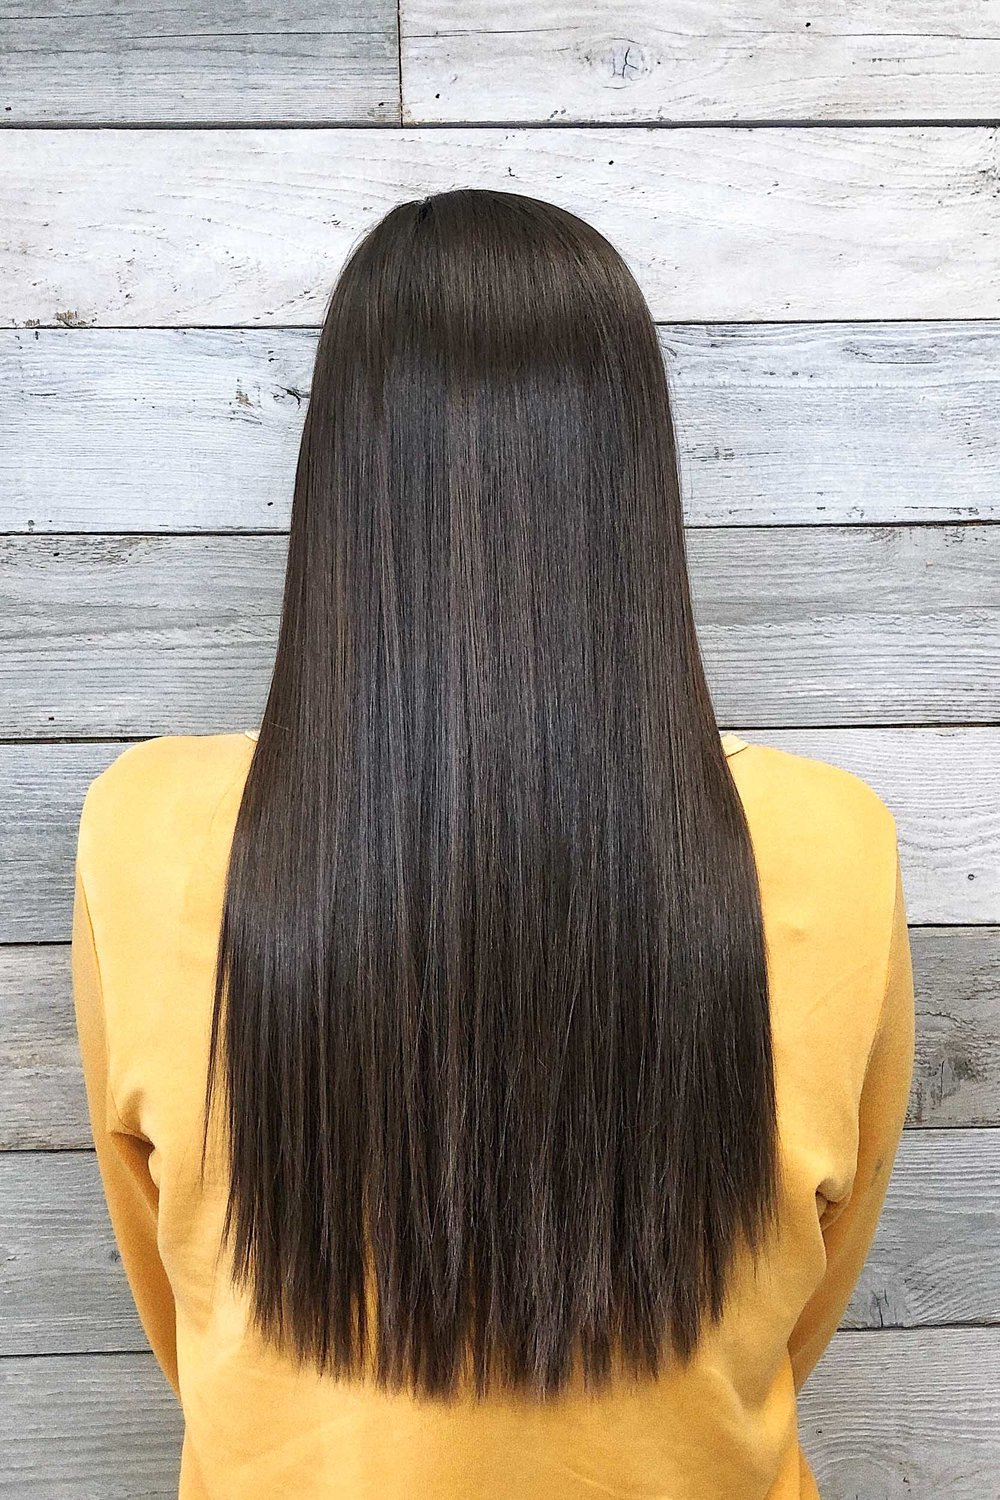 After Brazilian Blowout (and Toner)